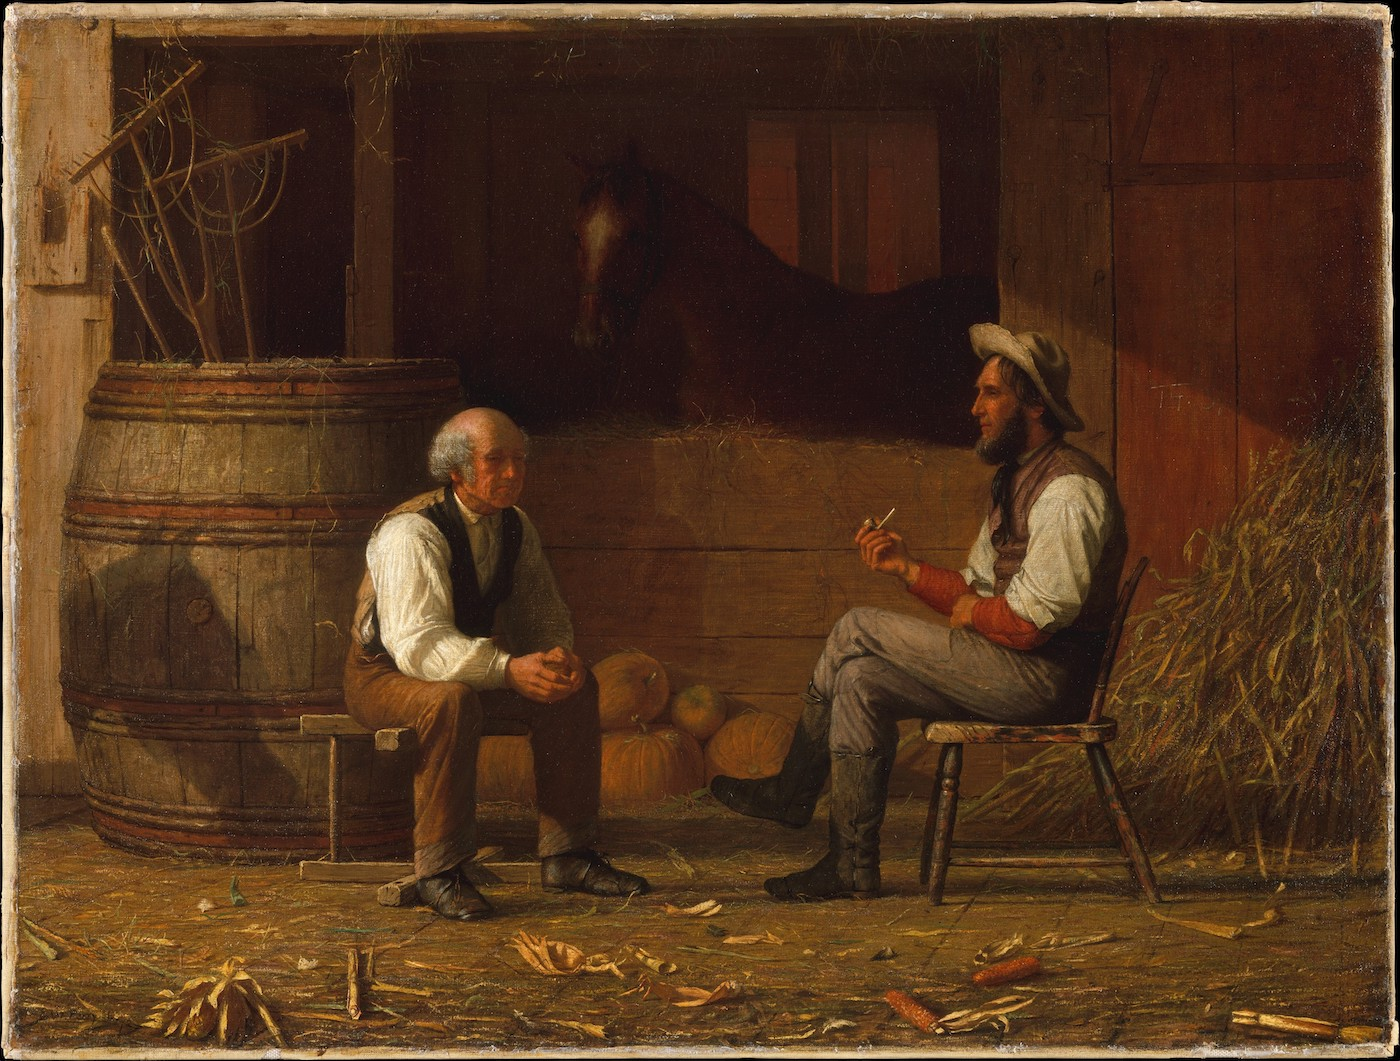 Talking It Over by Enoch Wood Perry, 1872